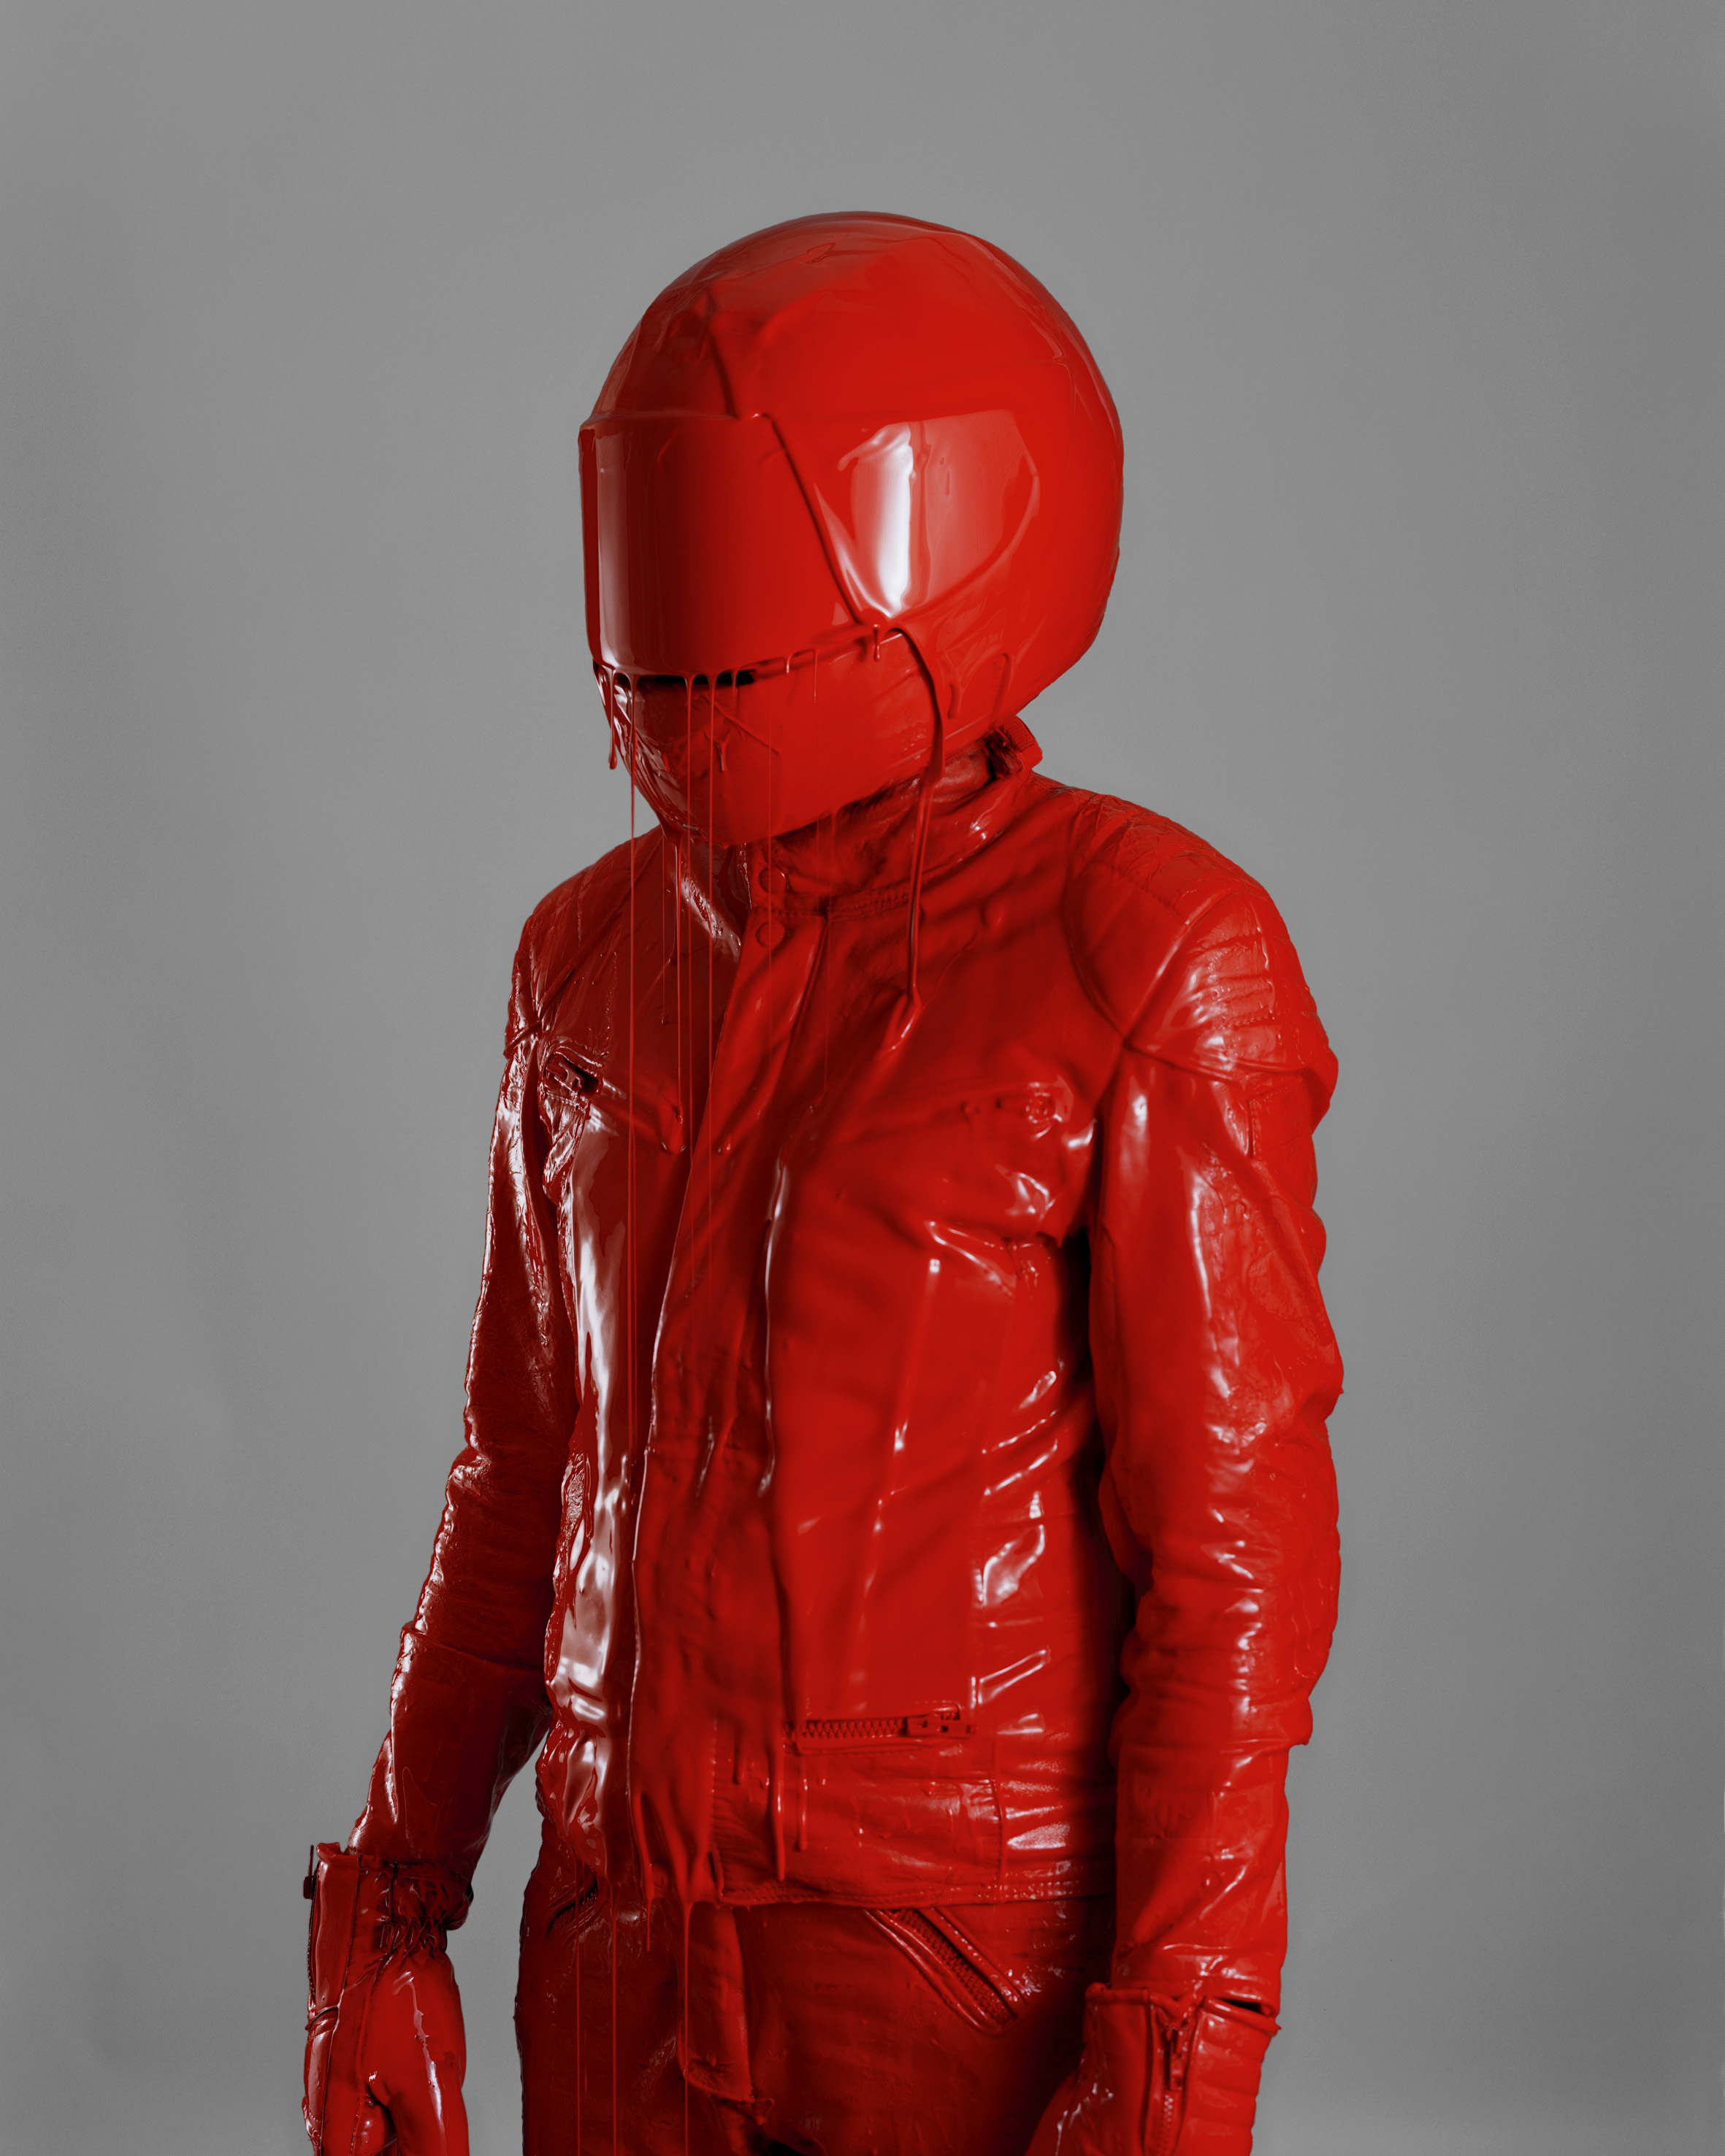 Man In Red Leather Suit, 2010